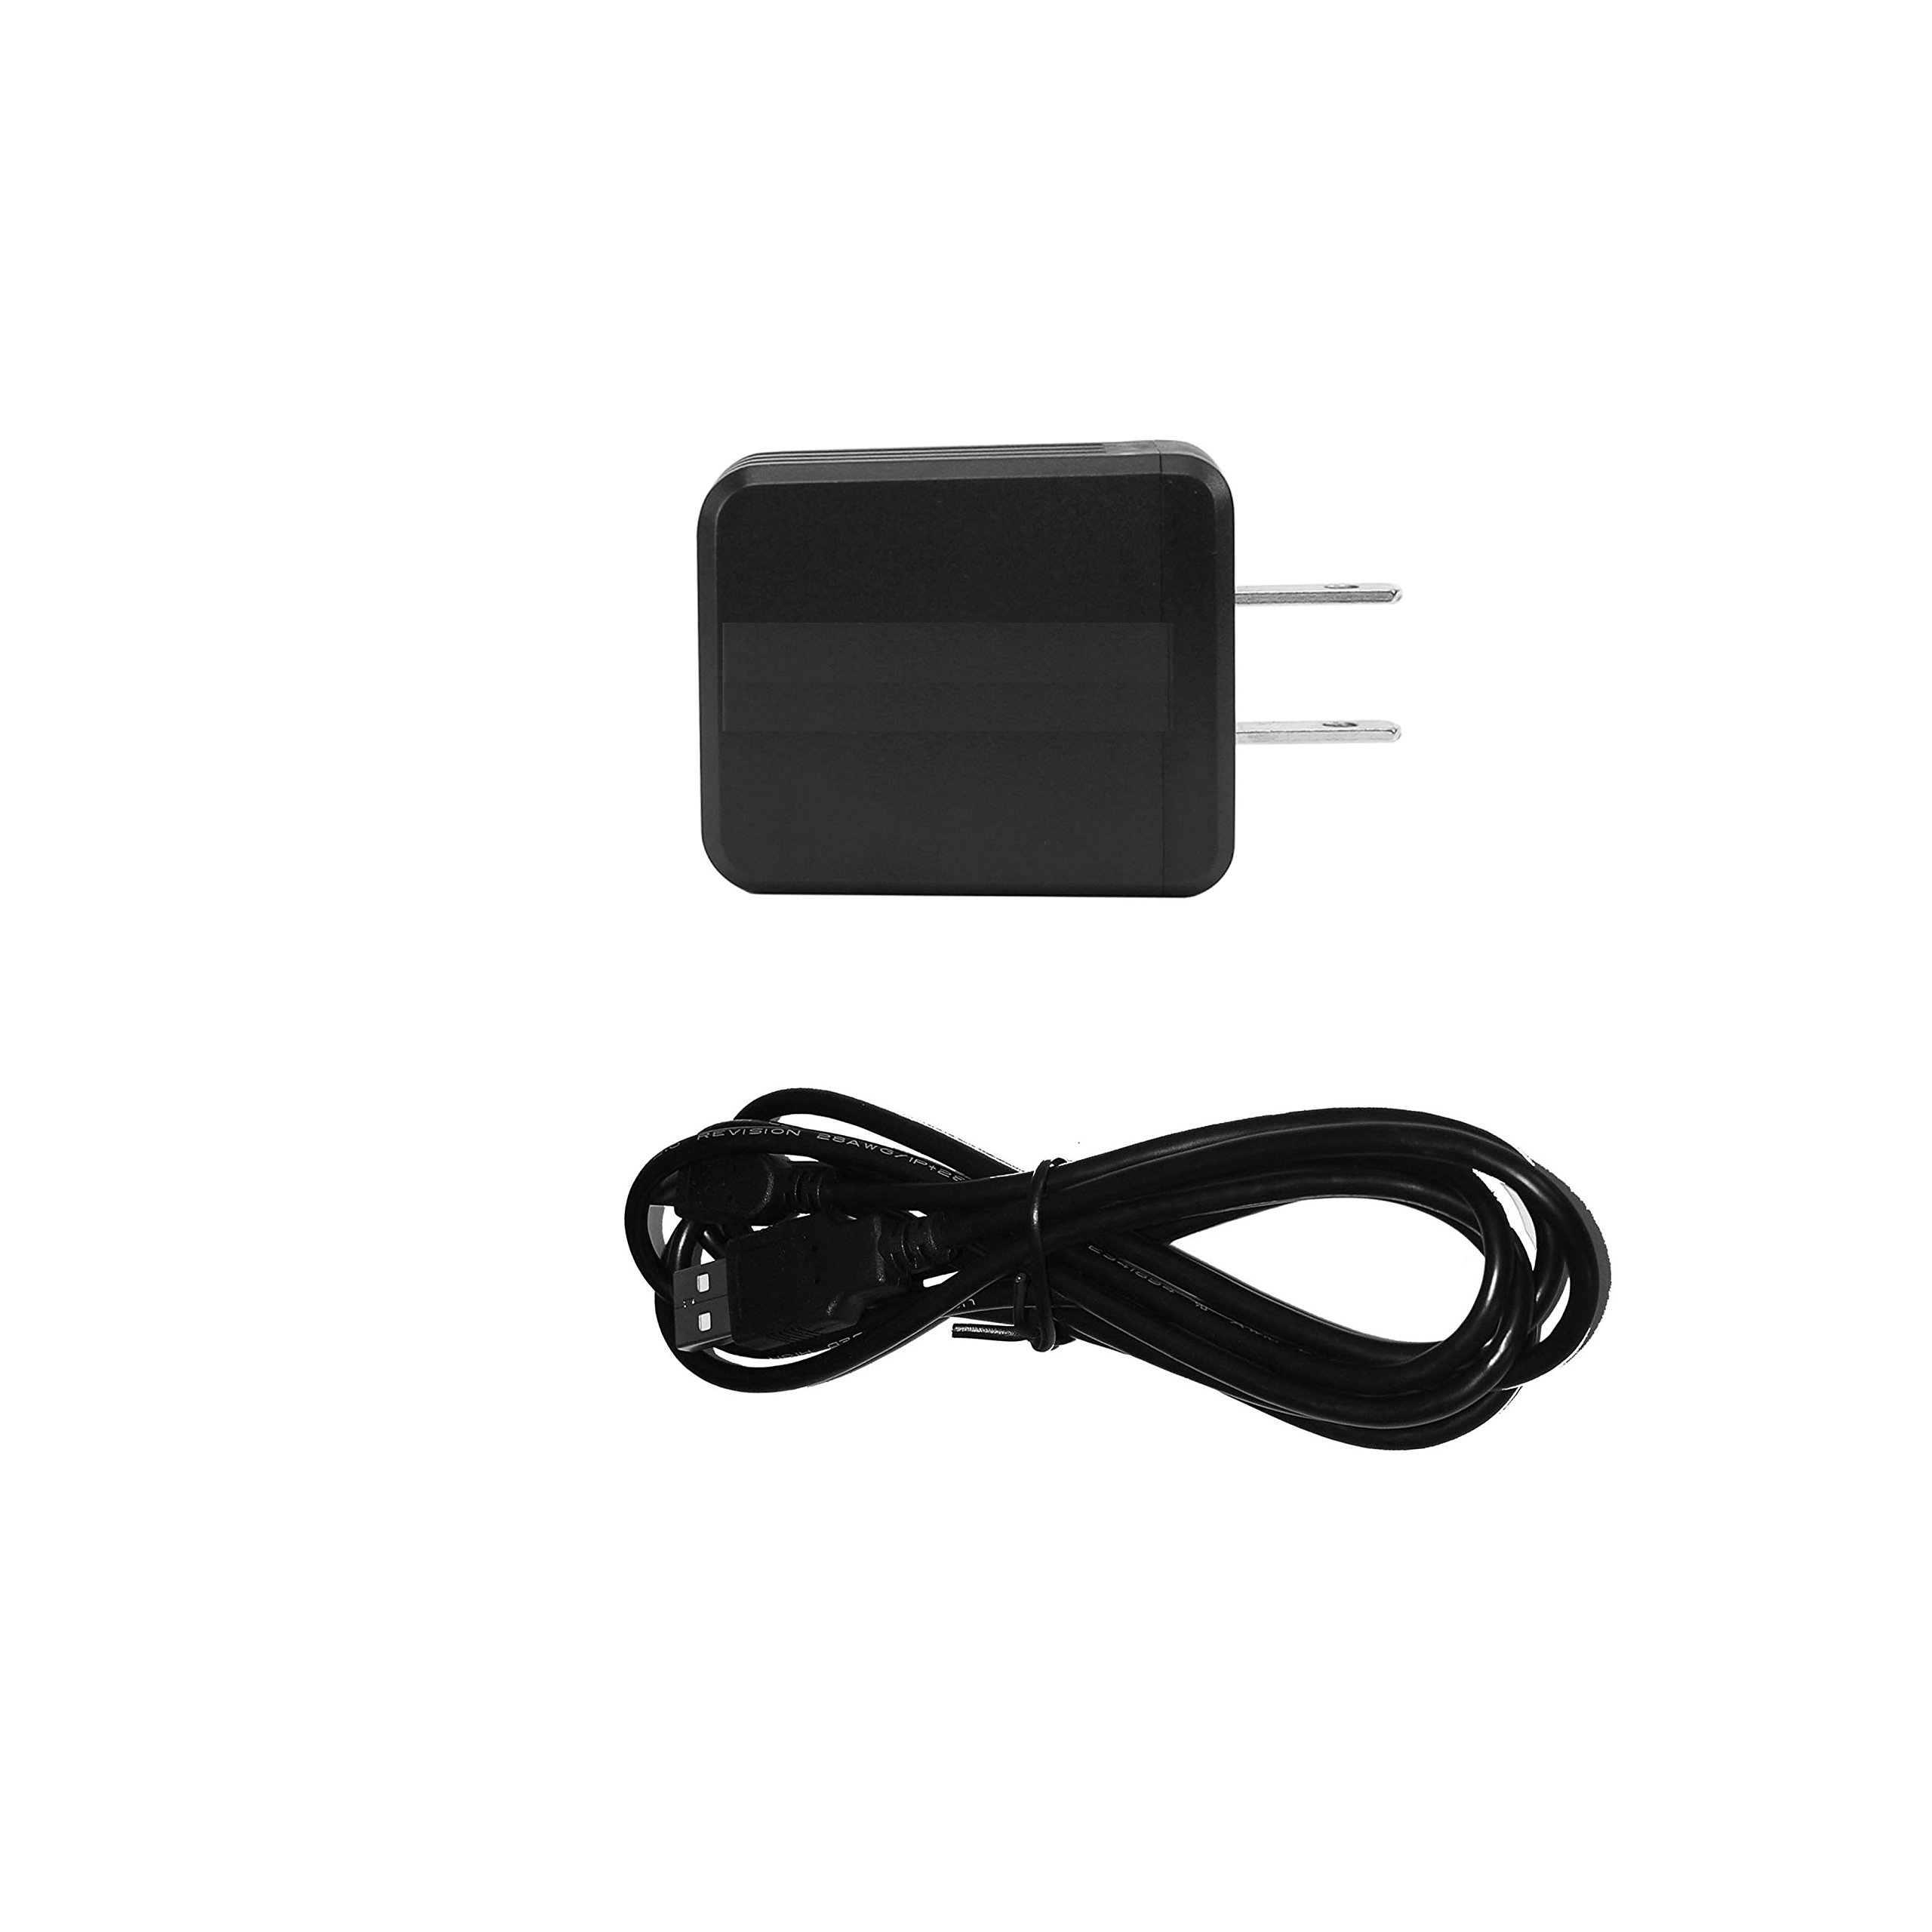 HOME WALL USB AC Adapter/Charger Replacement For Midland ER200 Compact Emergency Crank Wx Radio